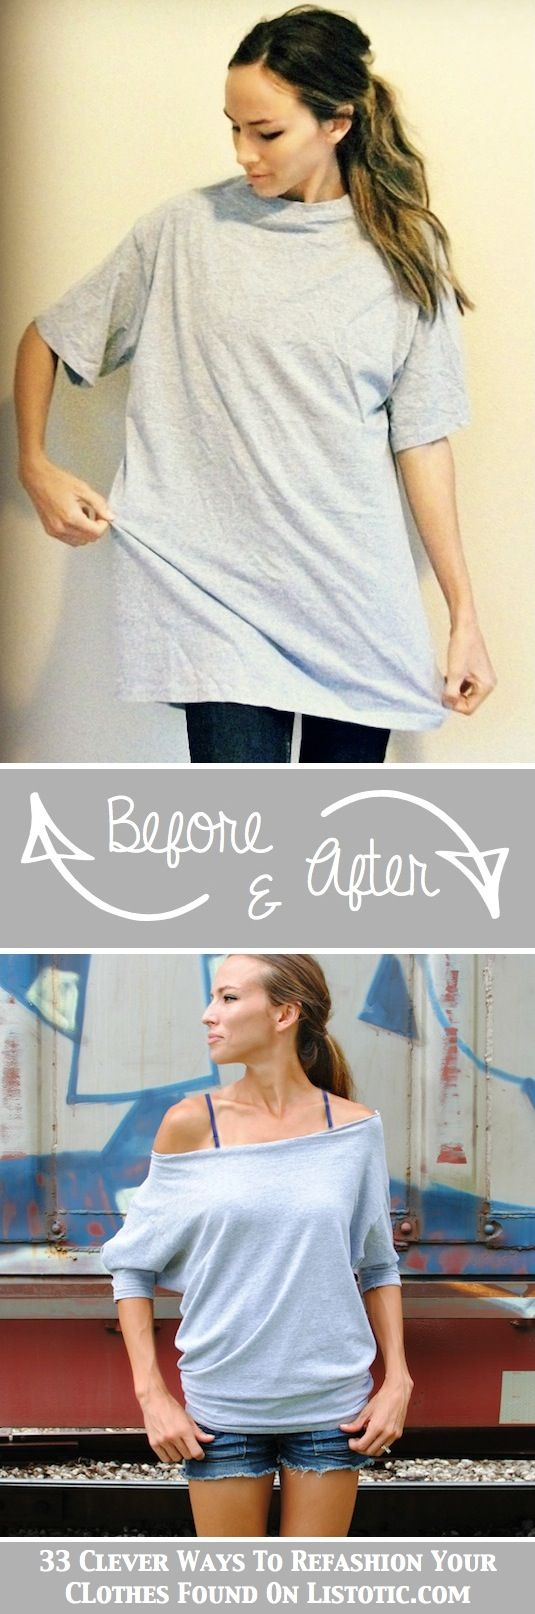 33 Clever Ways to Refashion Clothes... love these ideas!! #clothes #refashionclothes #diyclothes